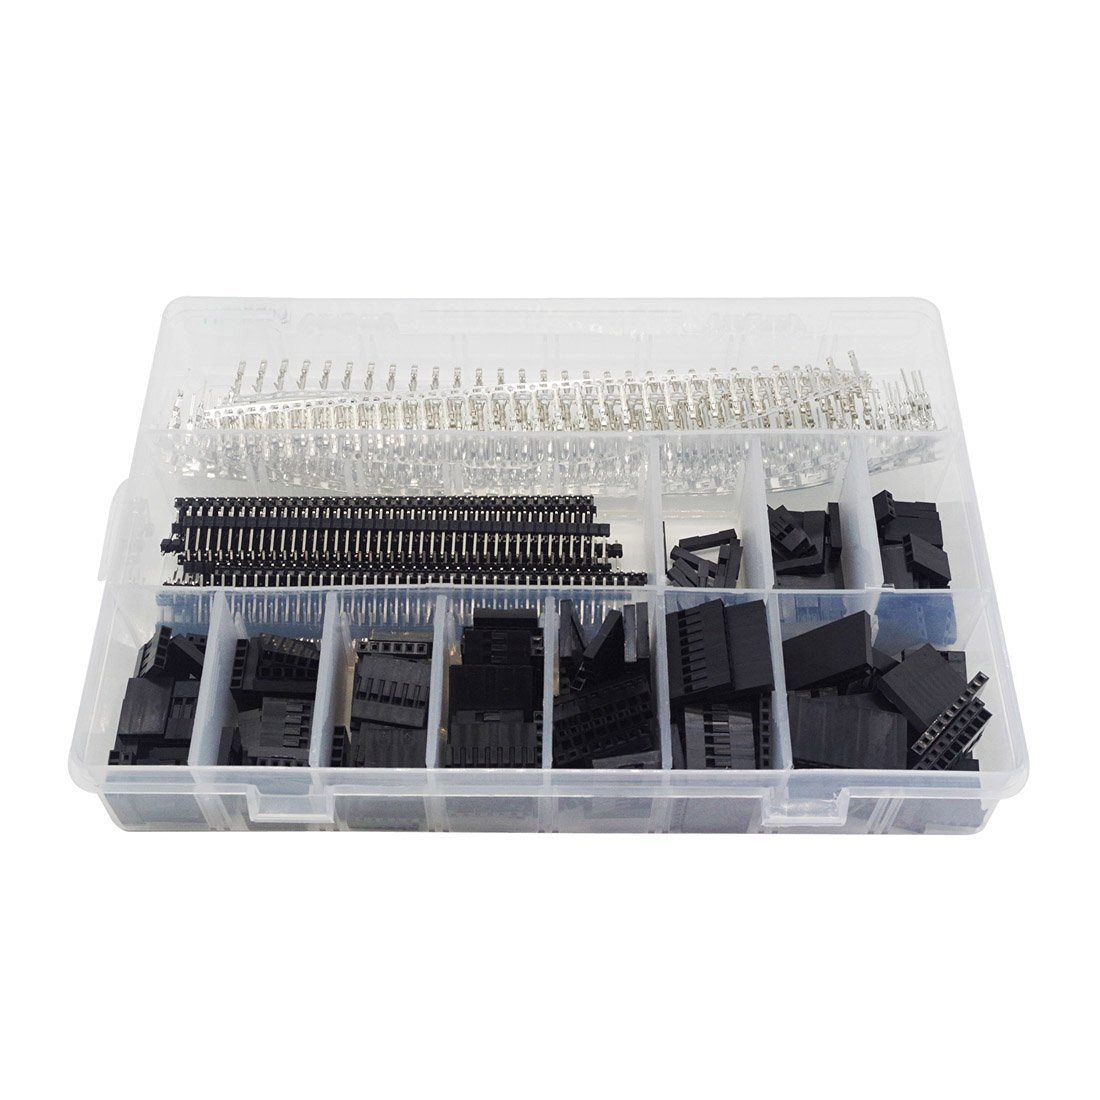 Haobase 520 Pcs 40 Pin 2.54mm Pitch Single Row Pin Headers,Dupont Connector H...